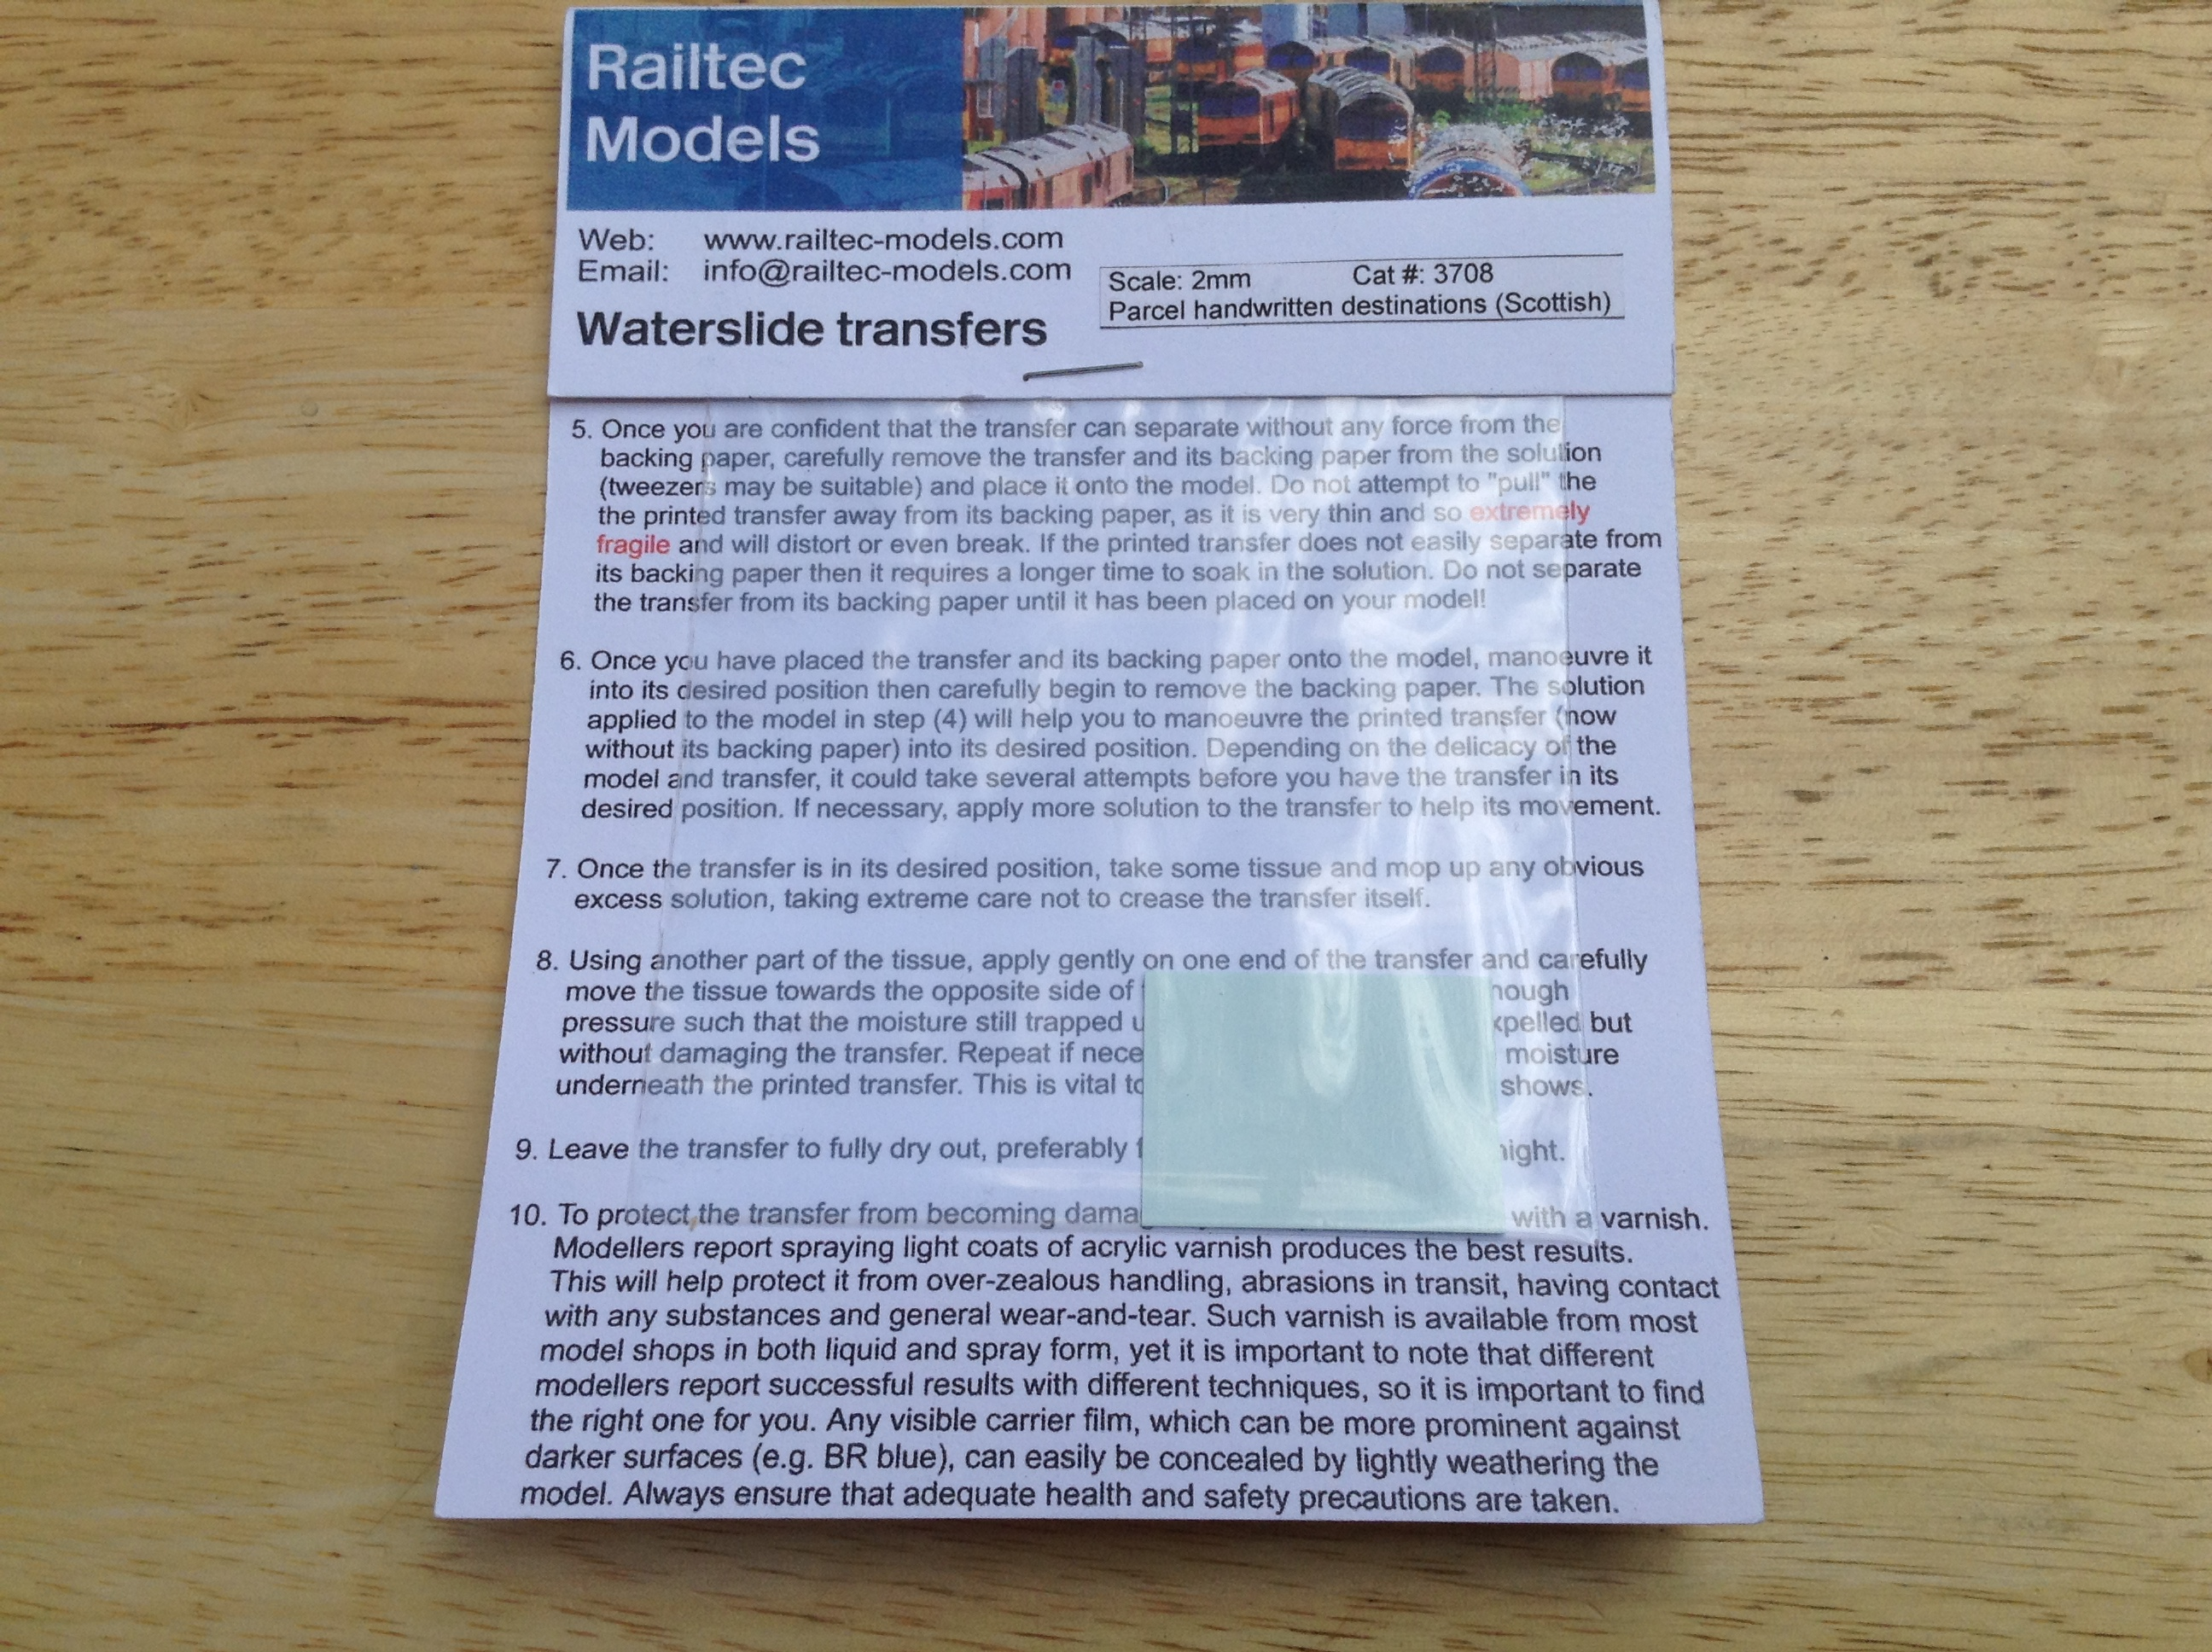 Railtec 3708 Parcel Handwritten Destinations (Scottish)